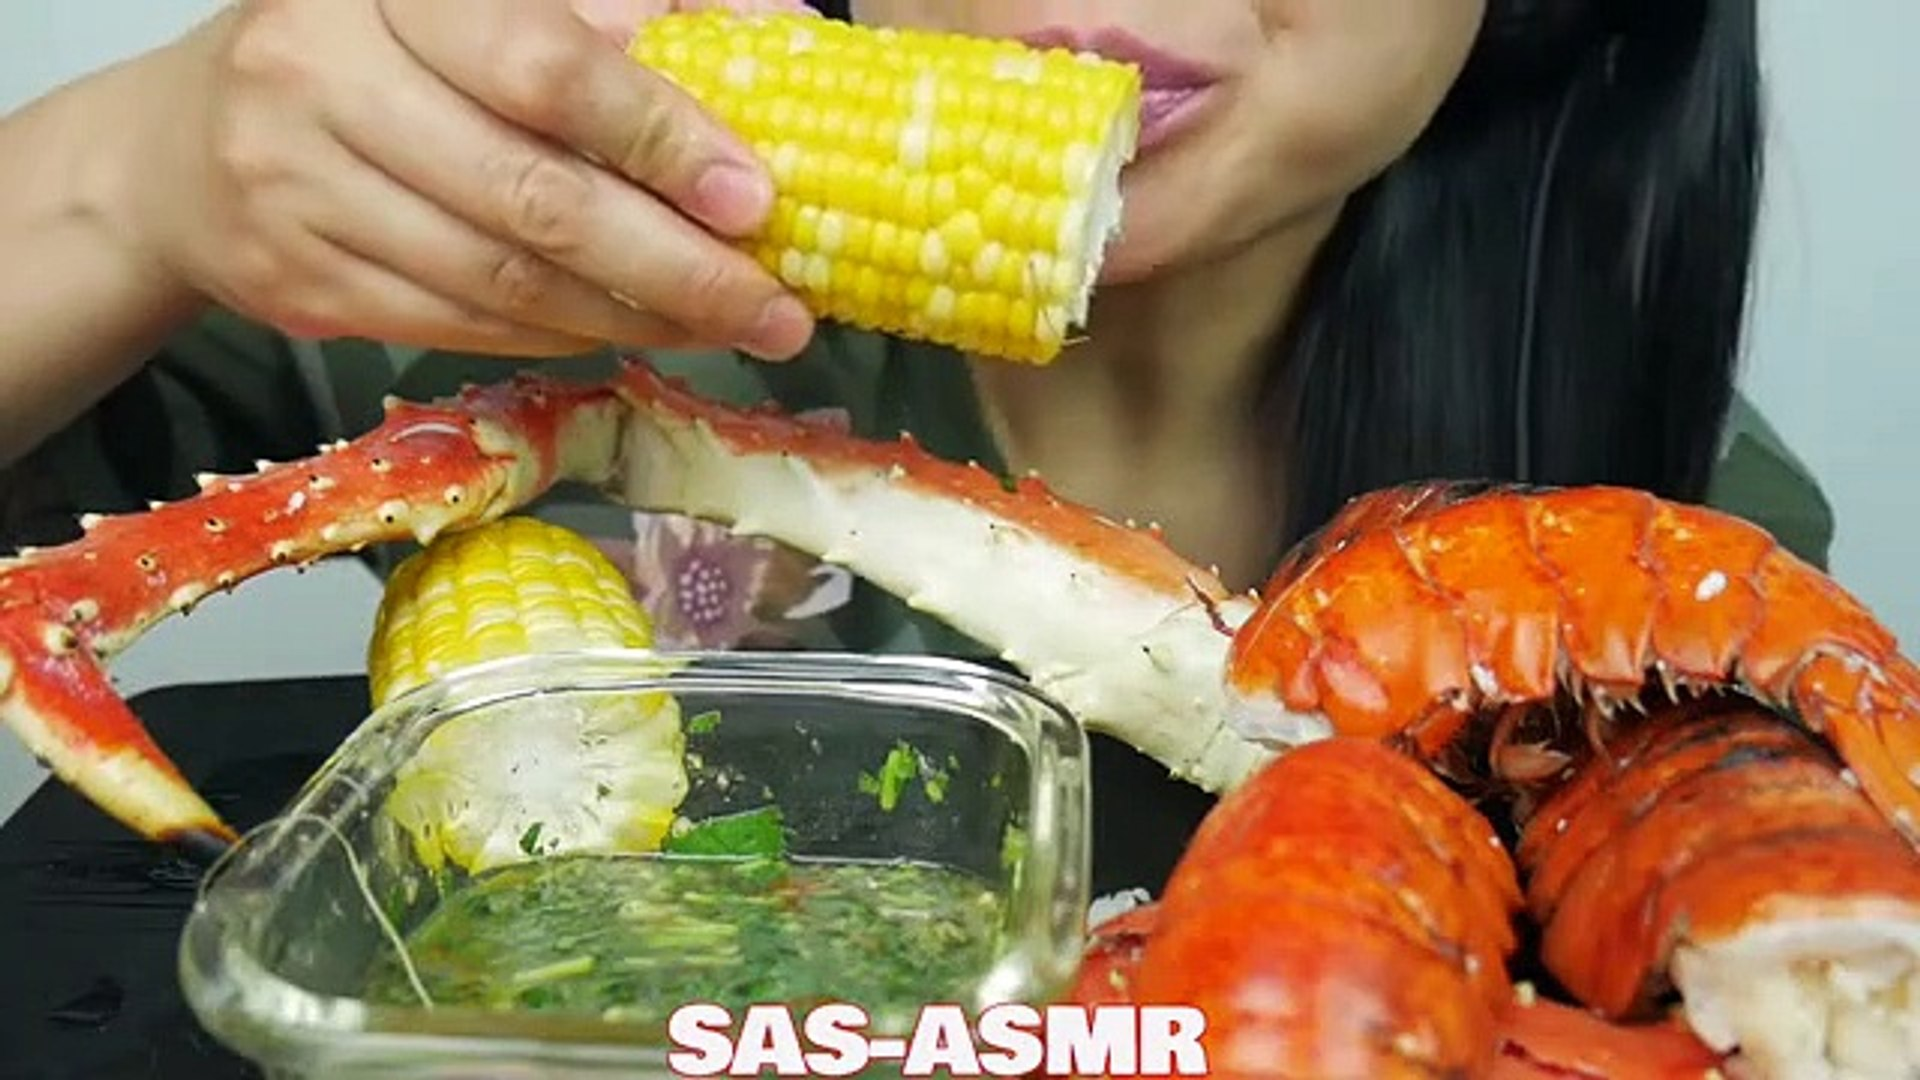 Asmr Seafood Boil Eating Sounds No Talking Sas A Video Dailymotion Asmr baby octopus chewy eating sounds no talking sas asmr. asmr seafood boil eating sounds no talking sas a